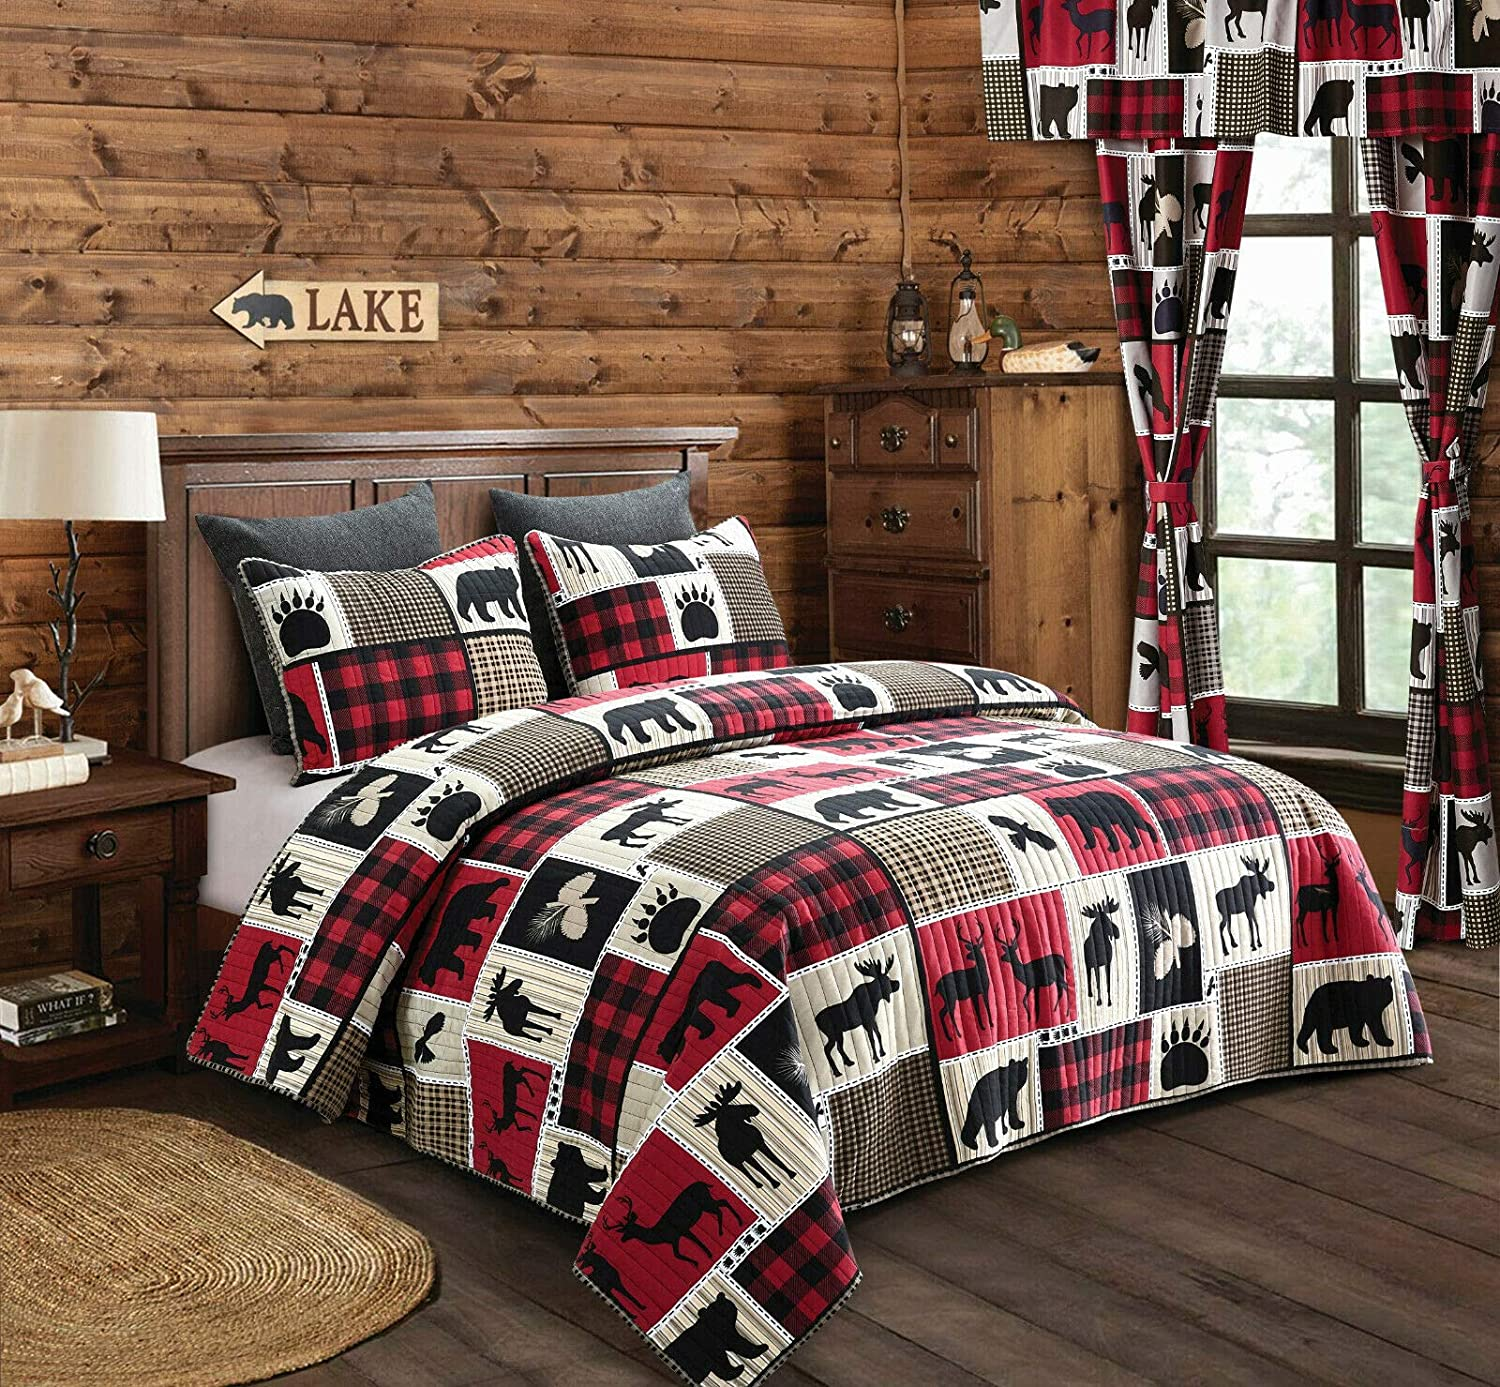 Virah Bella Lodge Life 2pc Twin Quilt Set, Black Bear Paw Moose Cabin Red Buffalo Check Plaid